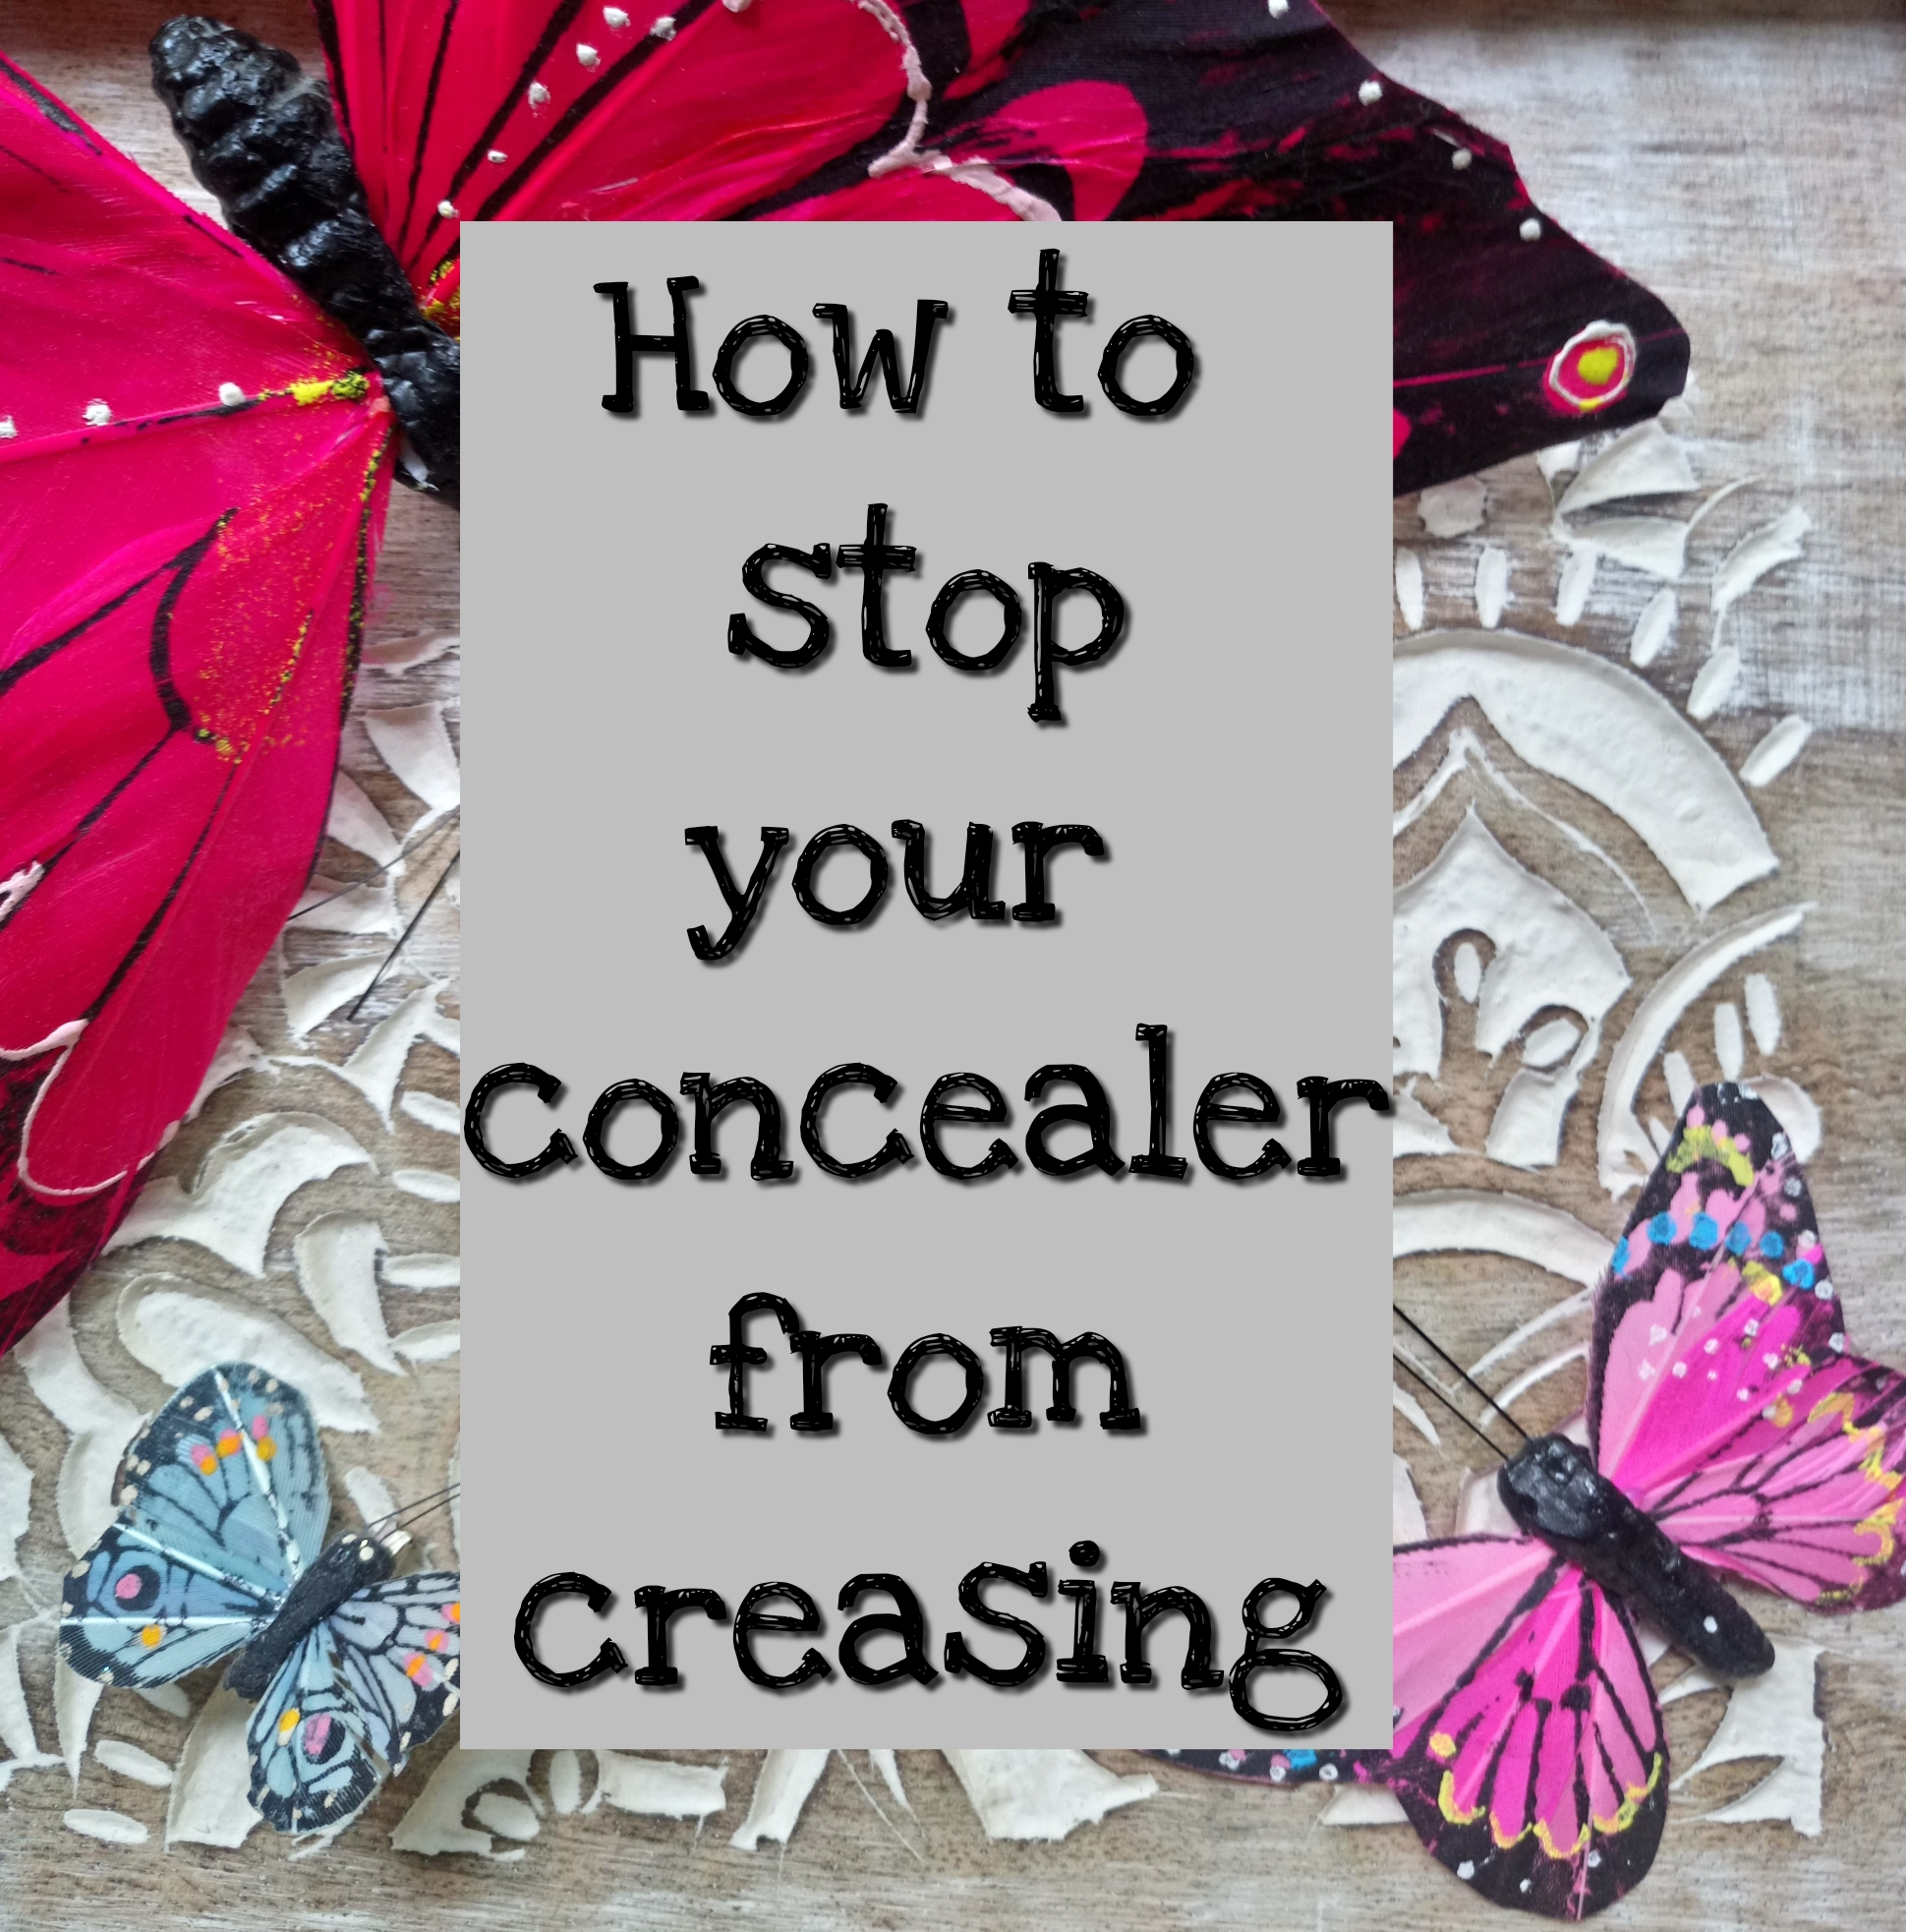 How To Stop Your Concealer From Creasing